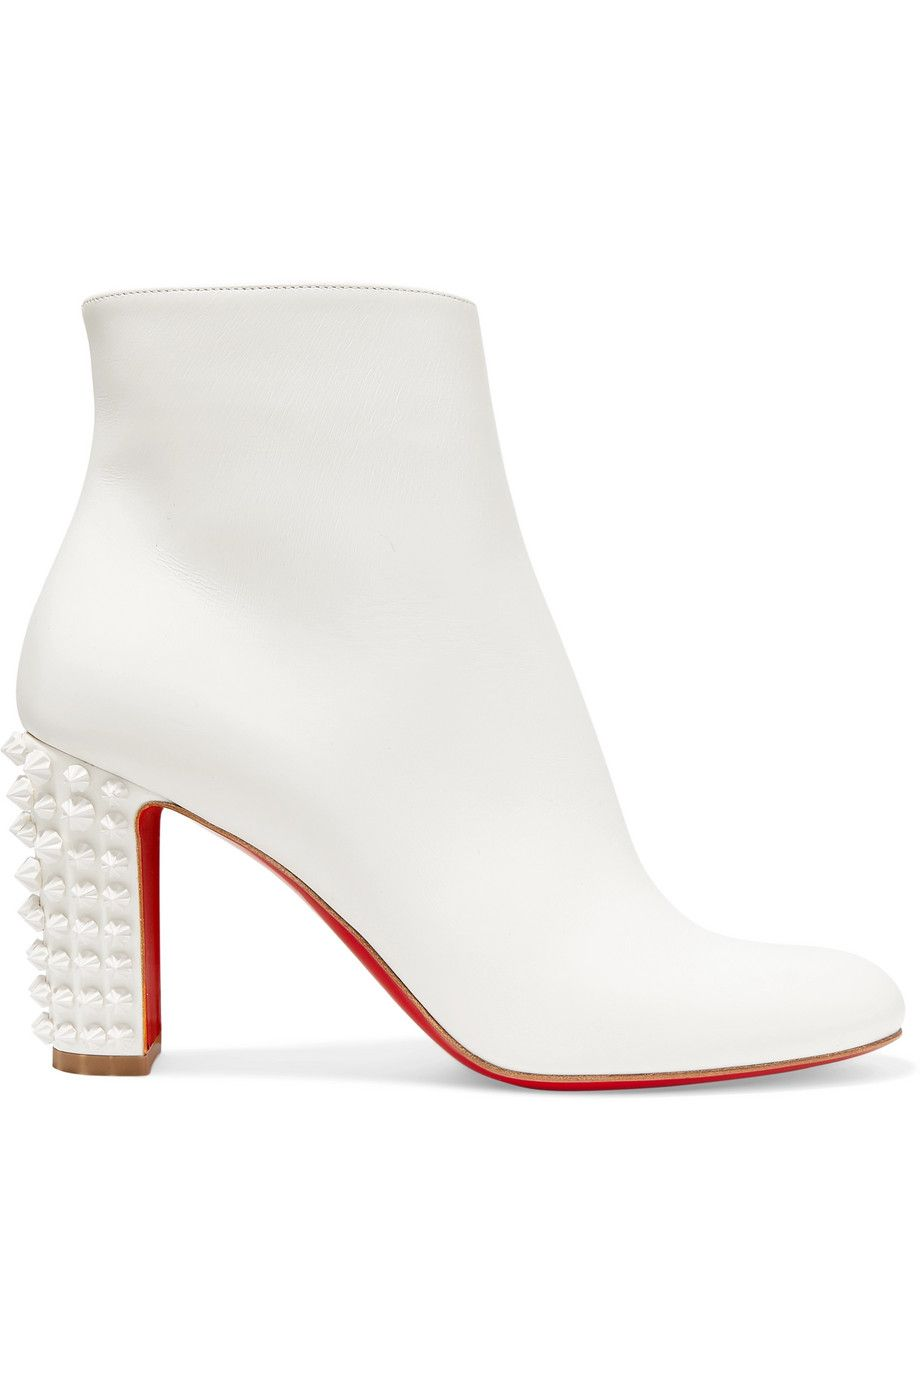 new style c85ae c8b9d Christian Louboutin - Suzi Folk 85 spiked leather ankle ...